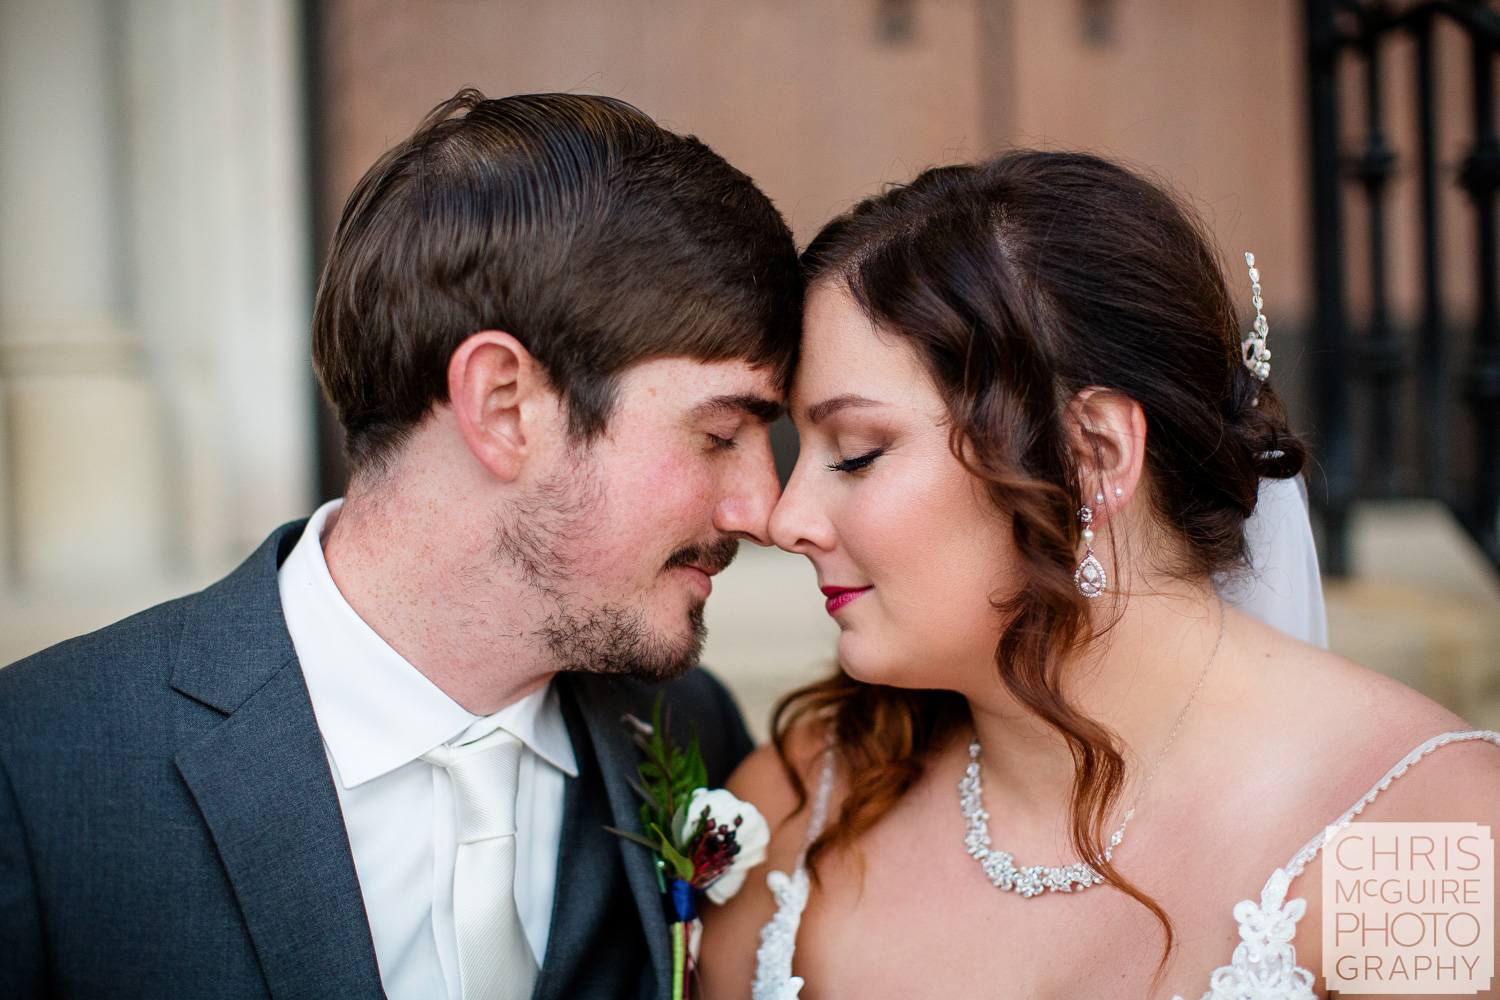 Intimate portrait of bride and groom in Peoria IL